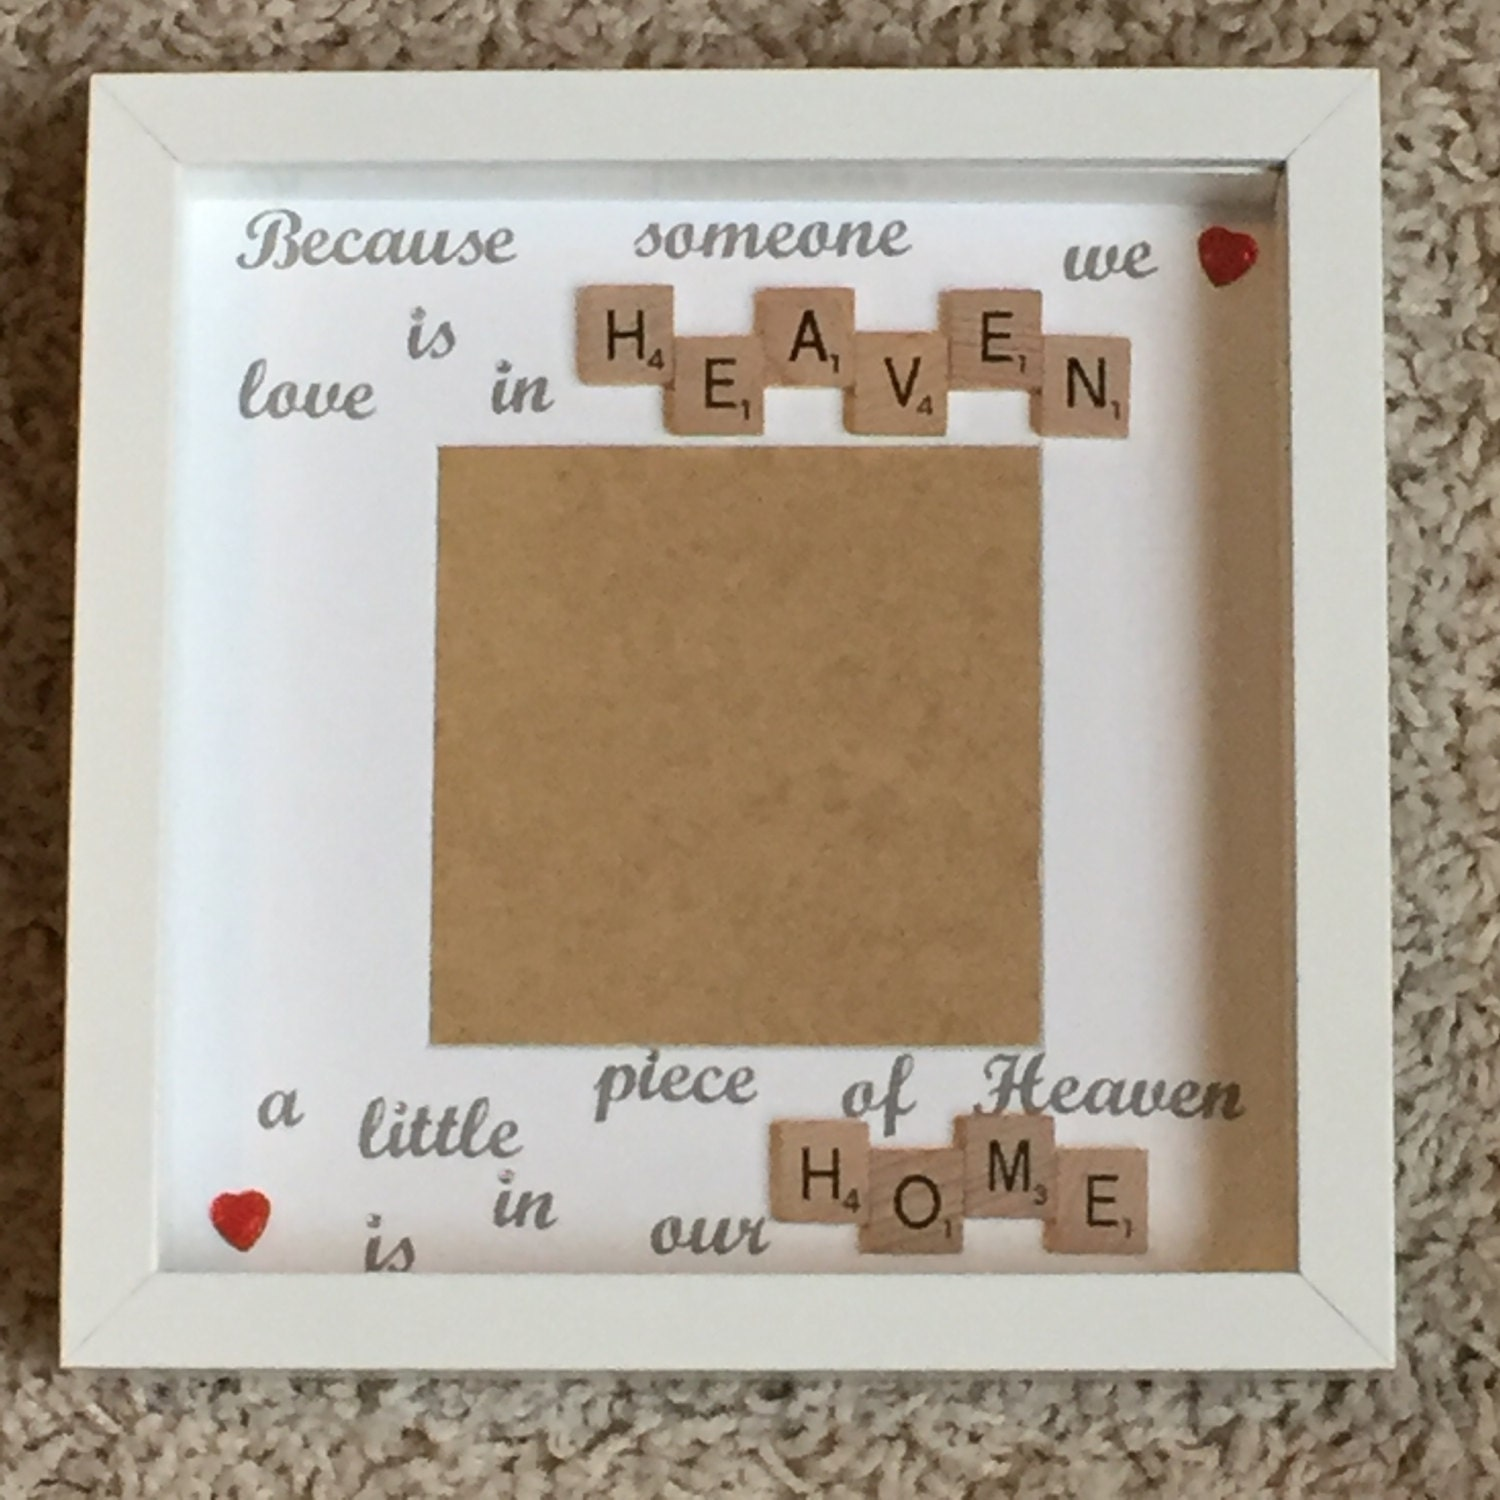 memory frame memorial frame scrabble art frame scrabble frame little piece of heaven photo frame loved one memory frame